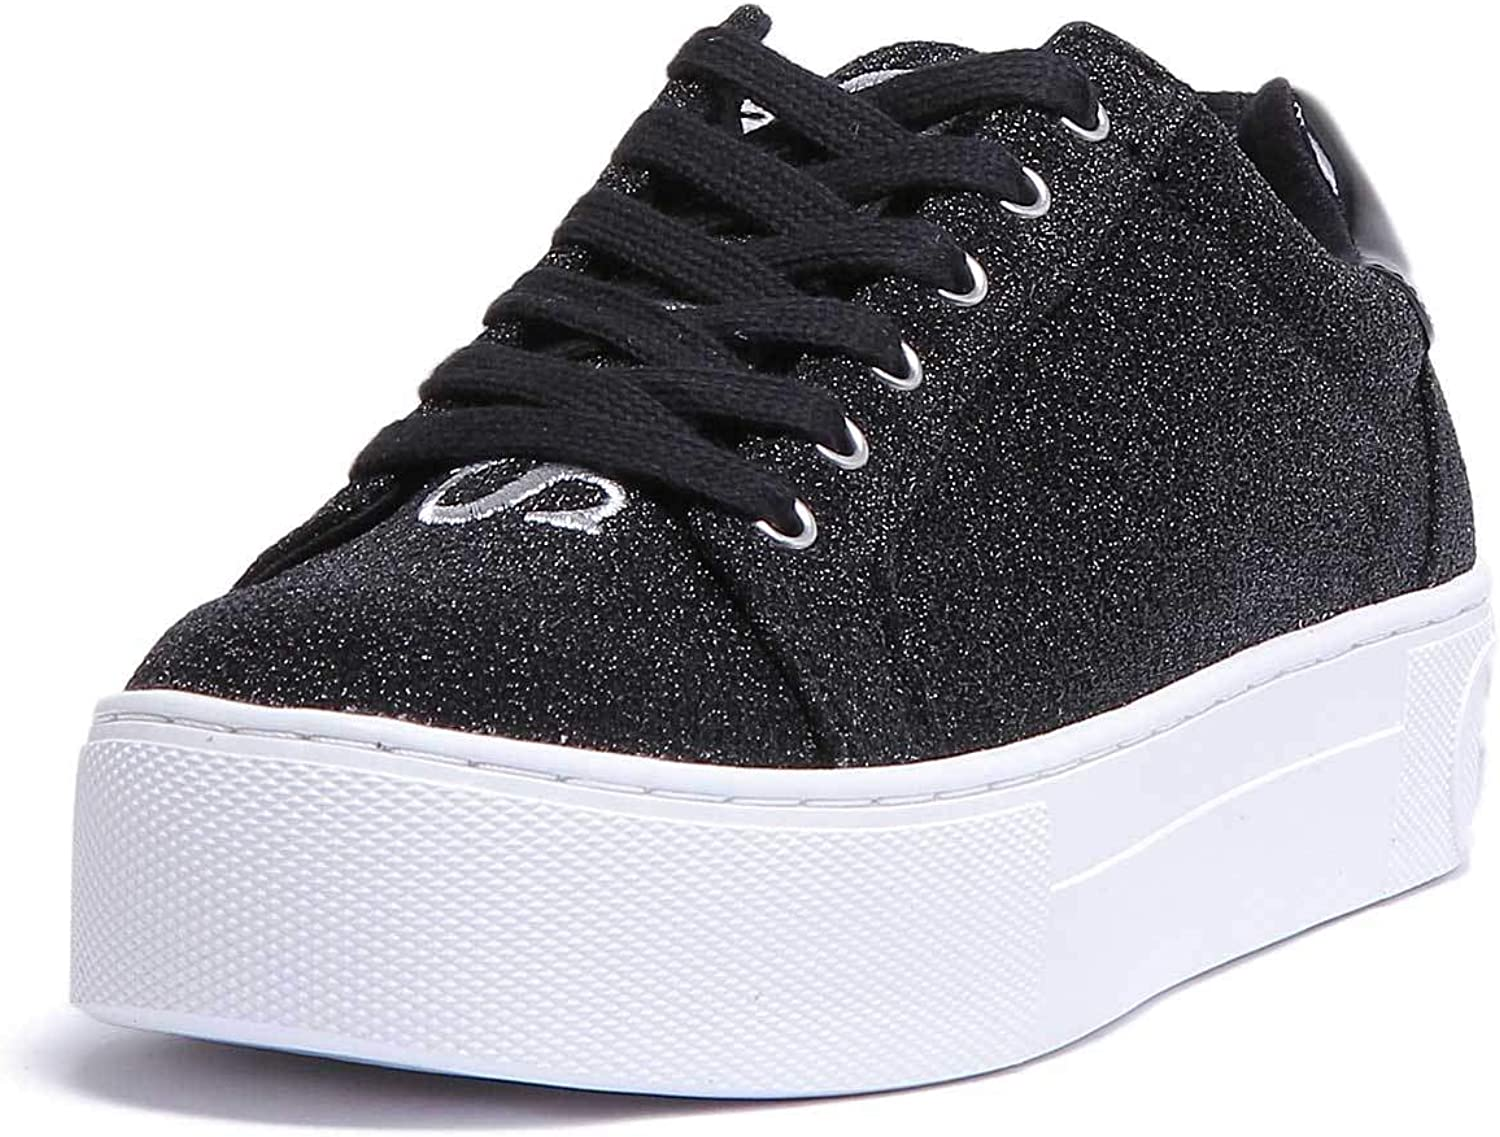 GUESS Flmea4Fam12 Womens Black White Synthetic Trainer